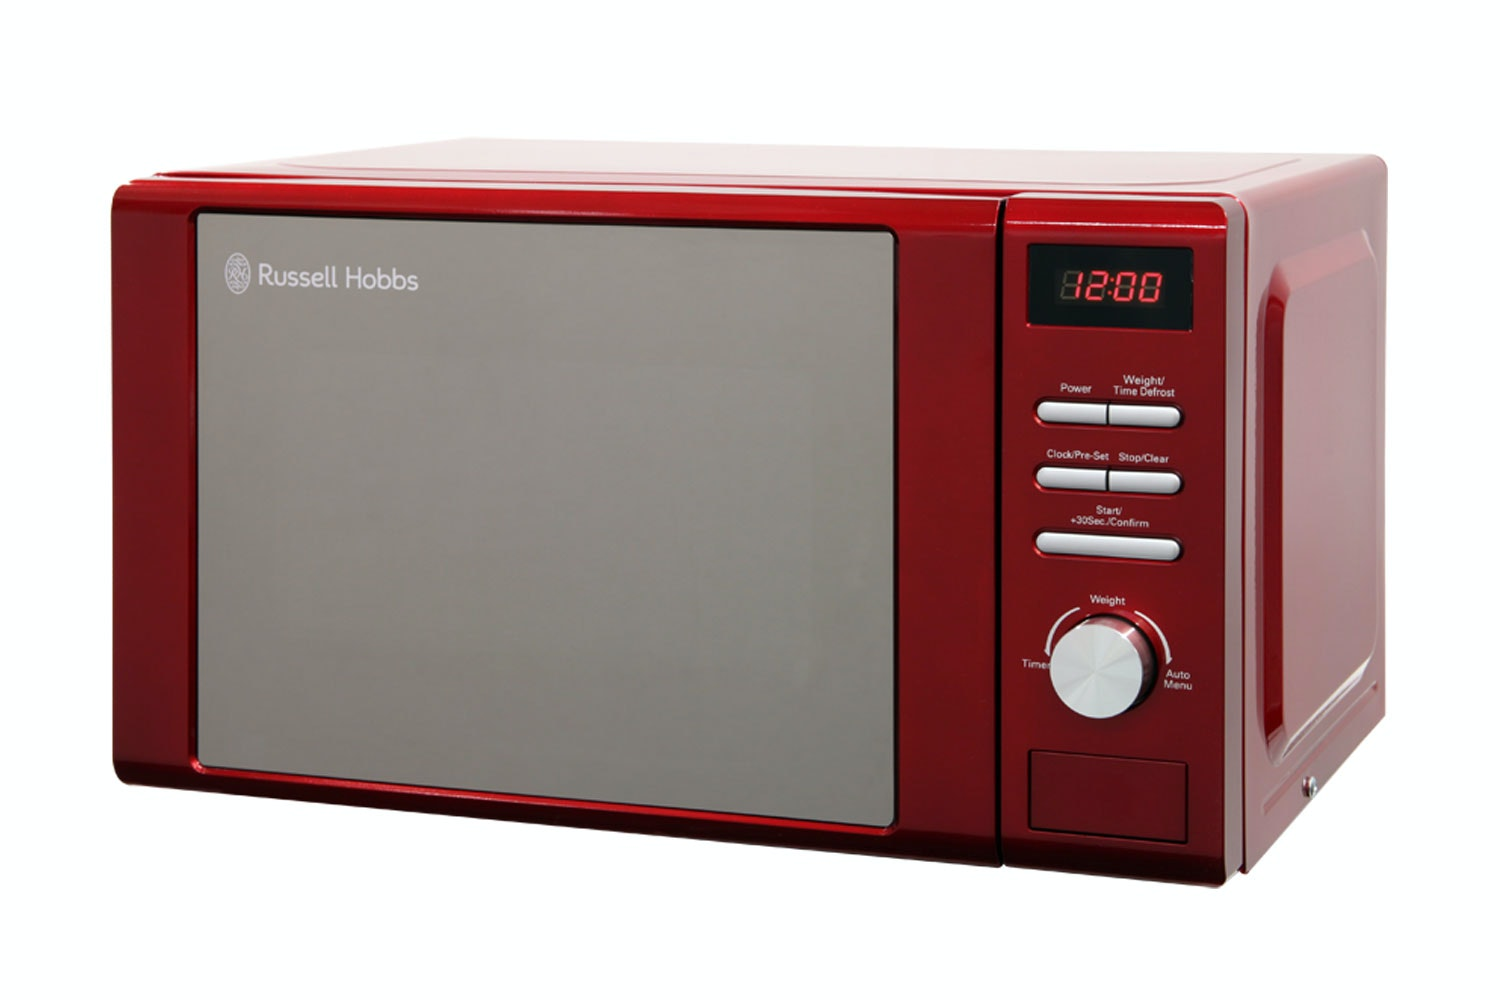 Russell Hobbs 20L 800W Microwave | Red